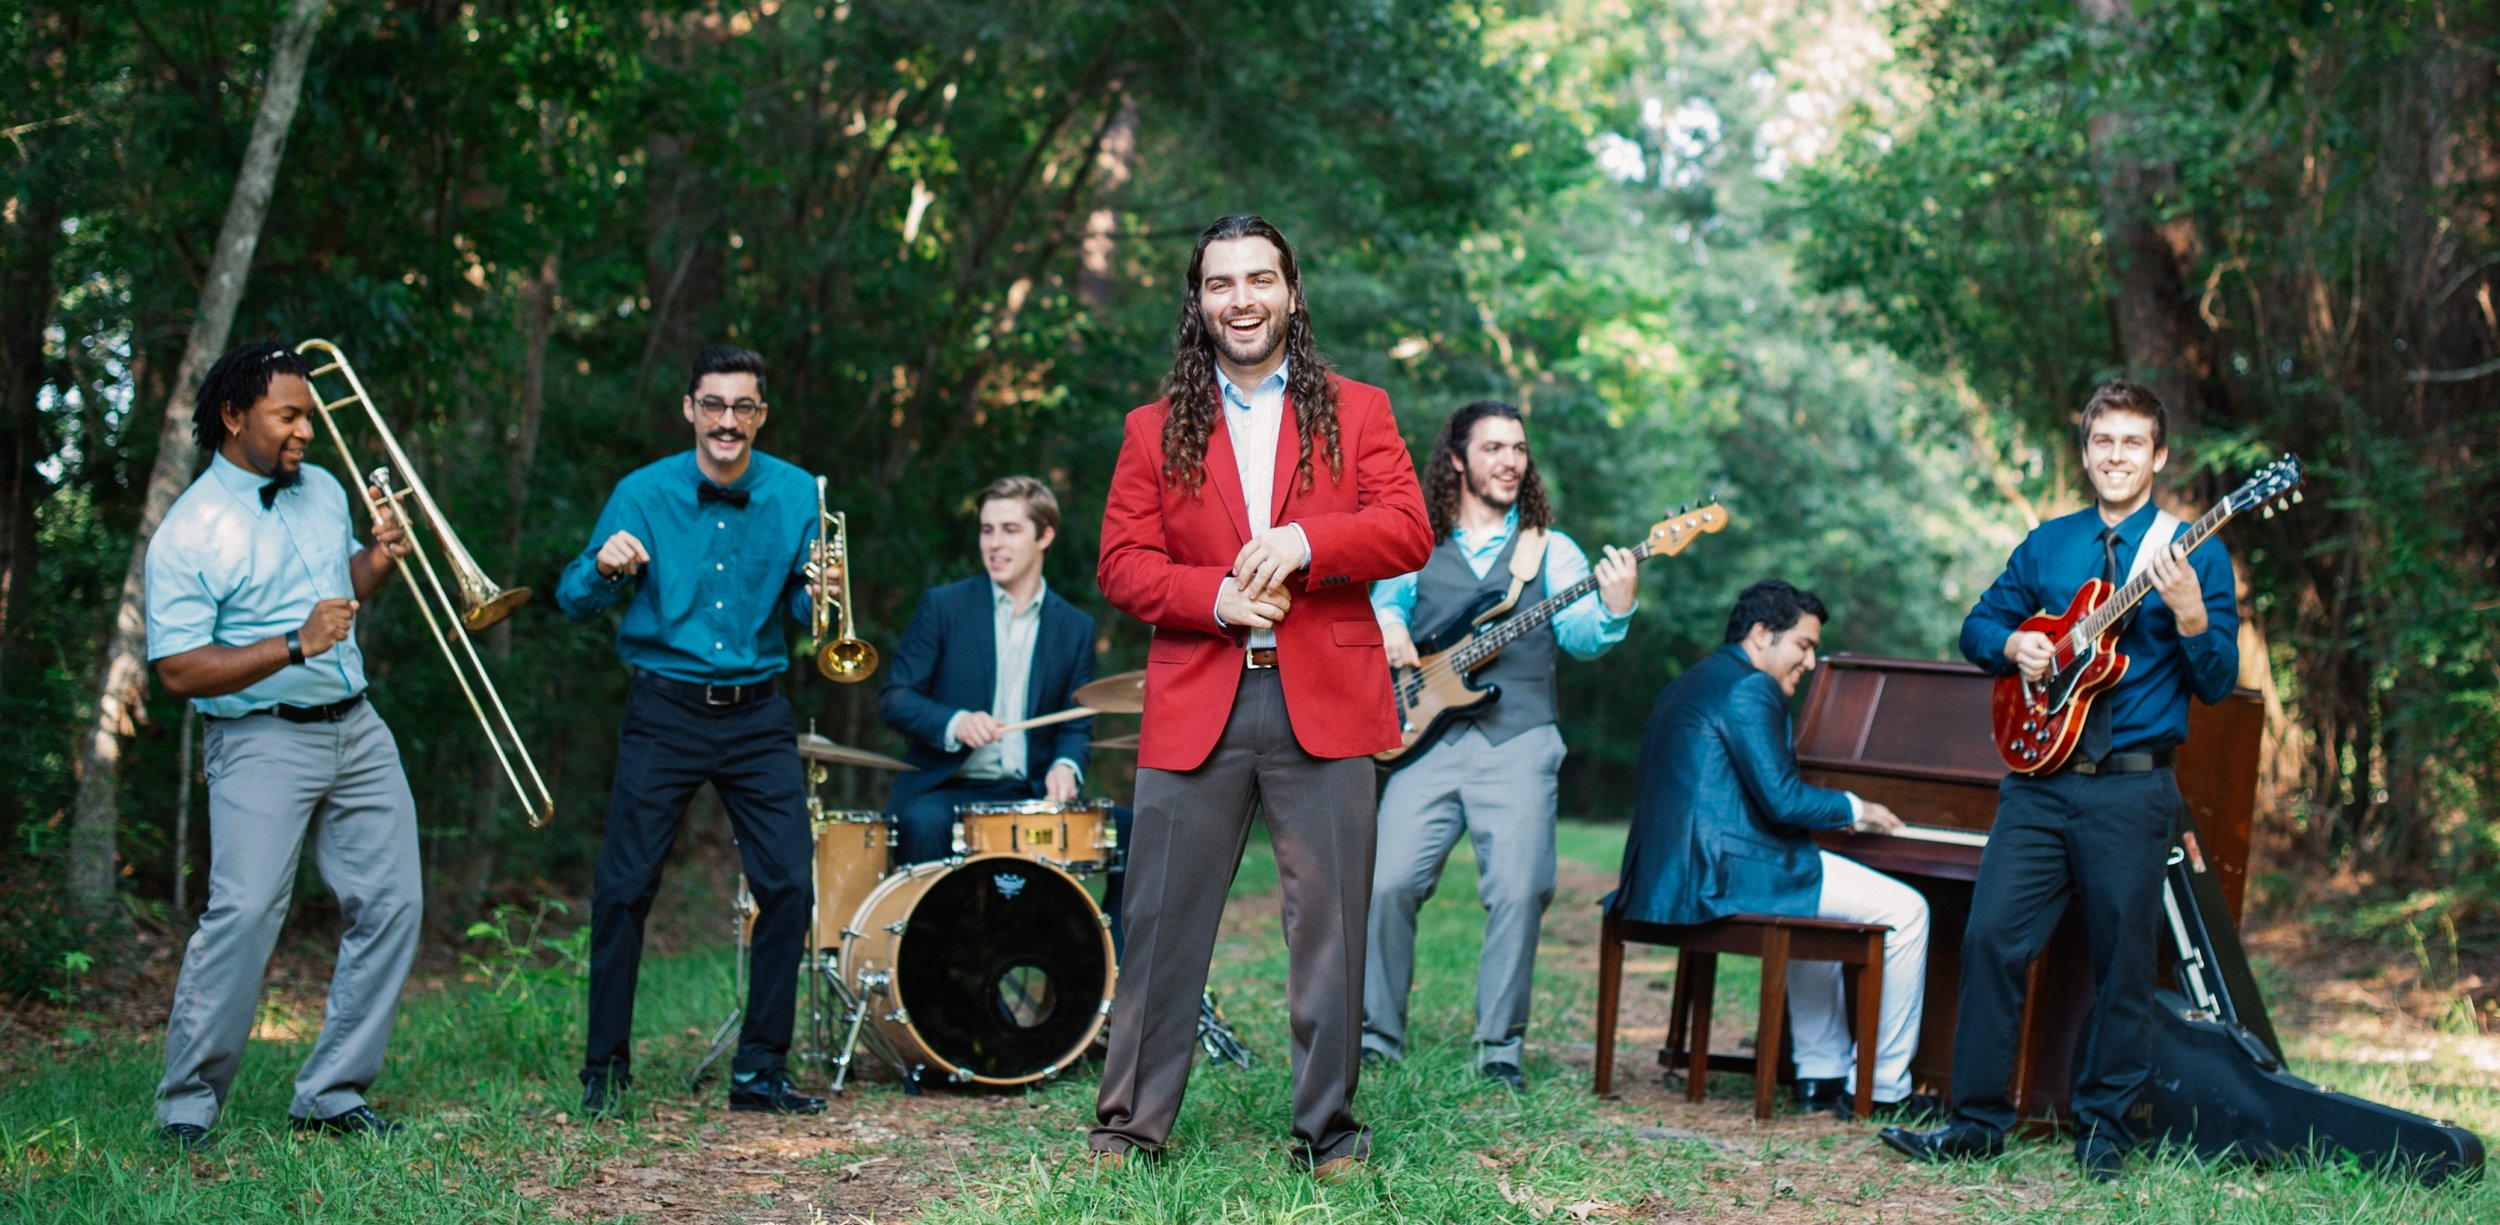 """Tyler Kinchen & The Right Pieces - Hi-energy live Pop, real """"grown folks"""" R&B, hip-shakin' Funk, and head-bobbin' Jazz/Soul from new orleansdown from the US South, tyler and his band creates classic acts like Kool & The Gang and Earth, Wind, & Fire with fierce rhythm and bold horns assemble along with current smooth baritones"""